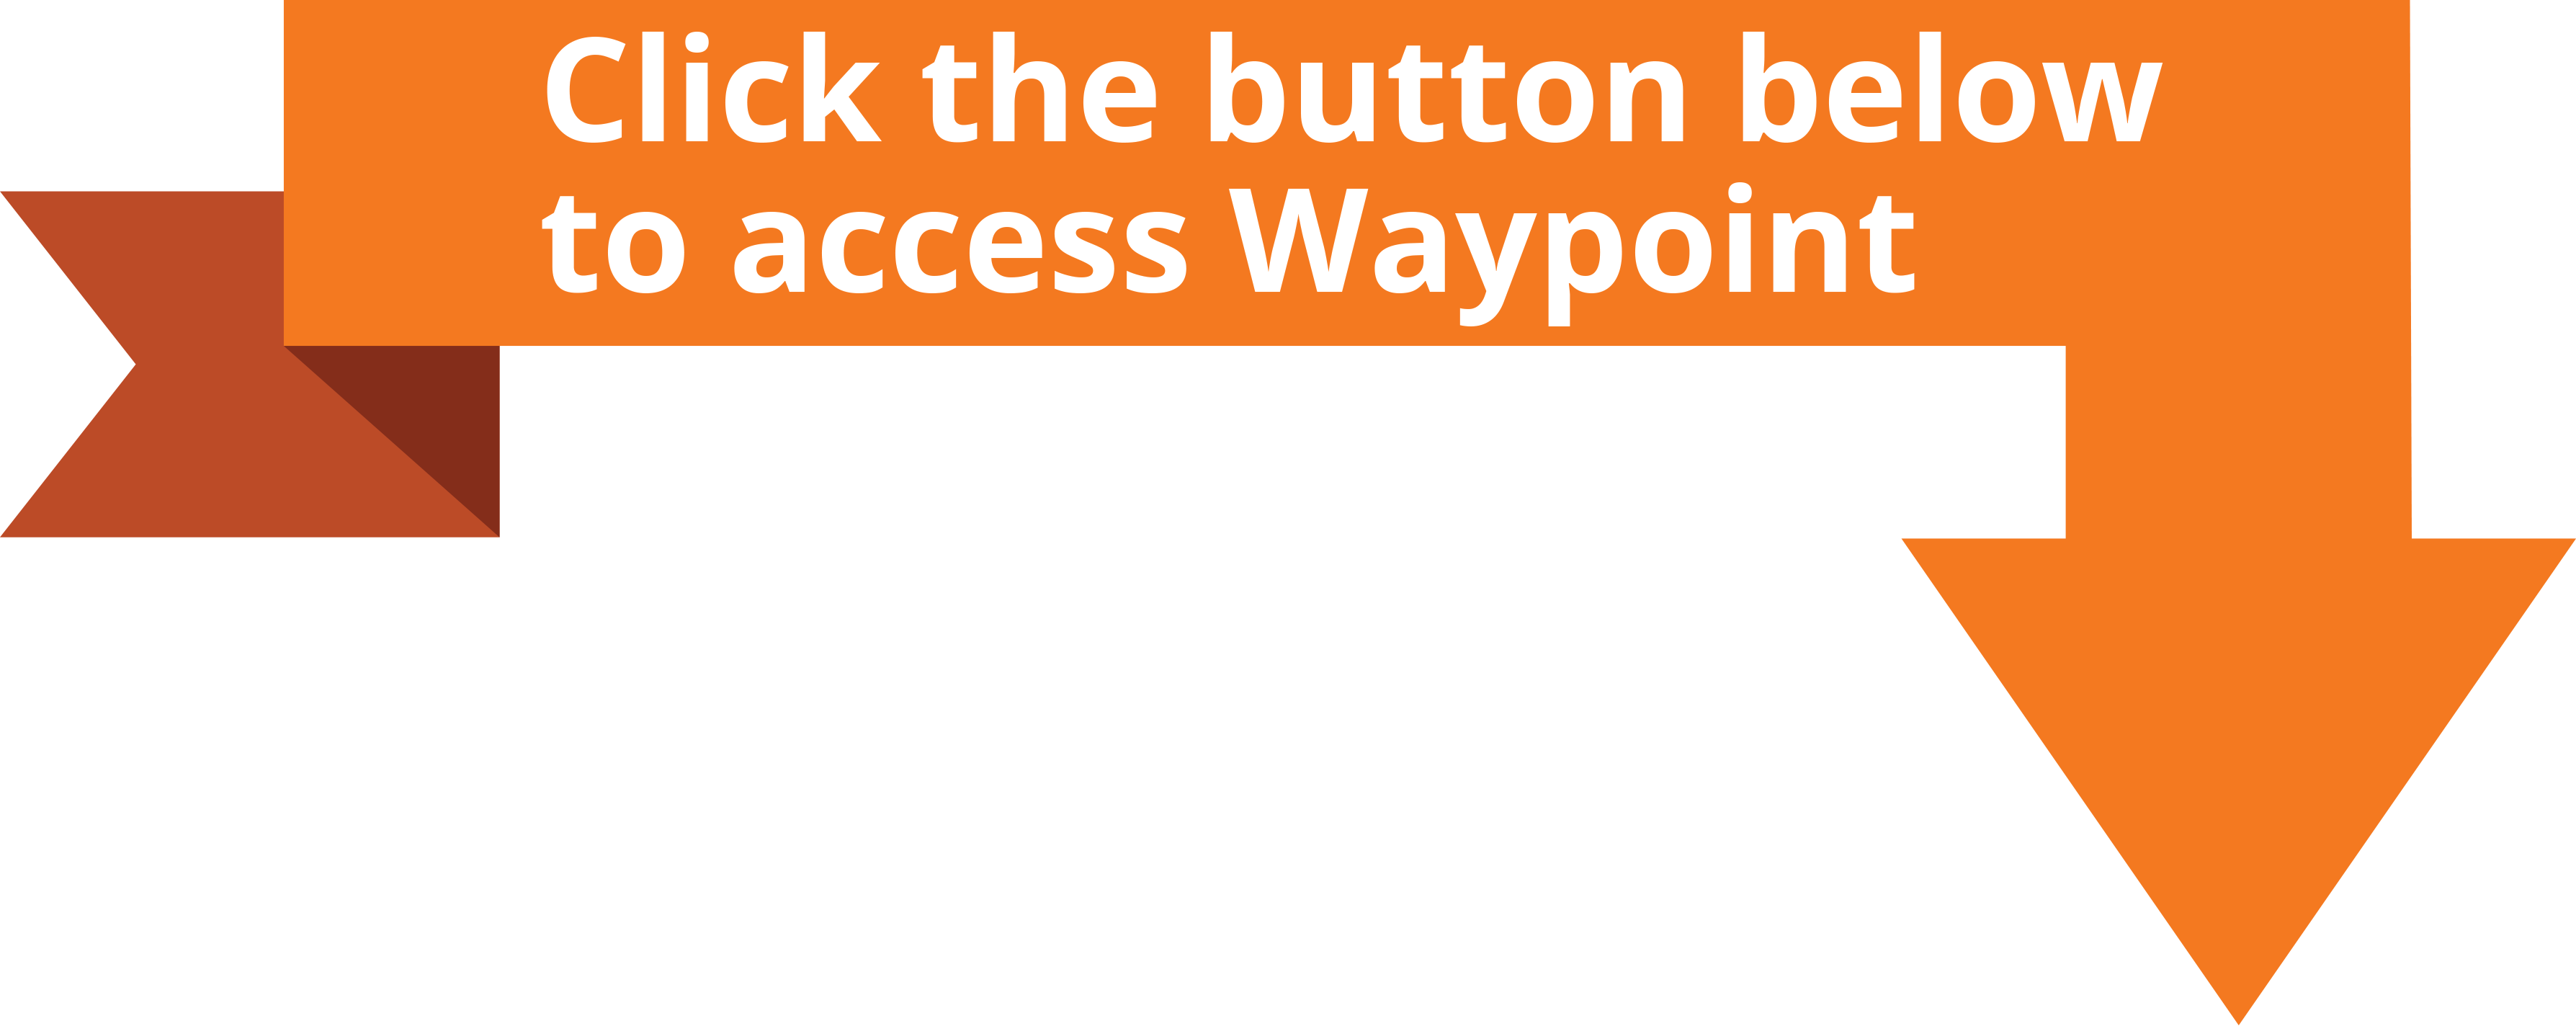 Click the button below to access Waypoint